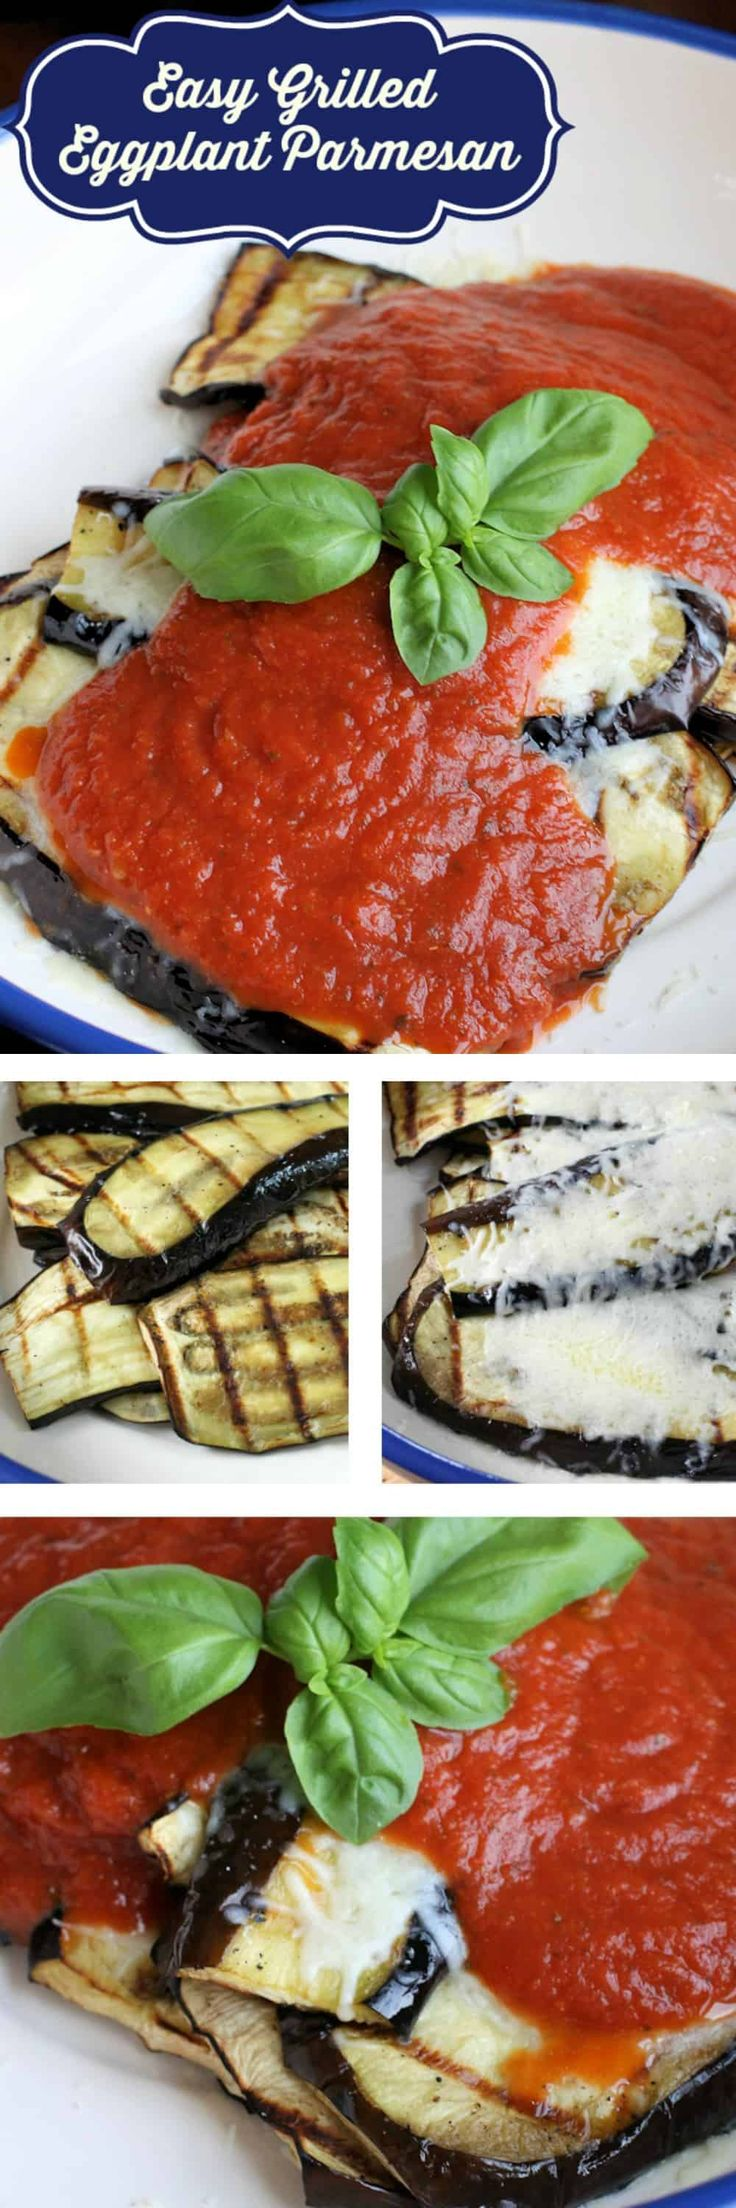 This Grilled Eggplant Parmesan is a great example of a recipe adapted for the grill with healthy results. Carbs and fat are greatly reduced in this recipes, yet flavor is not. The dish can certainly be served on it's own, but of course pairs well with pasta. It would also make a great side for grilled chicken. #lowcarb #vegetarian #eggplant